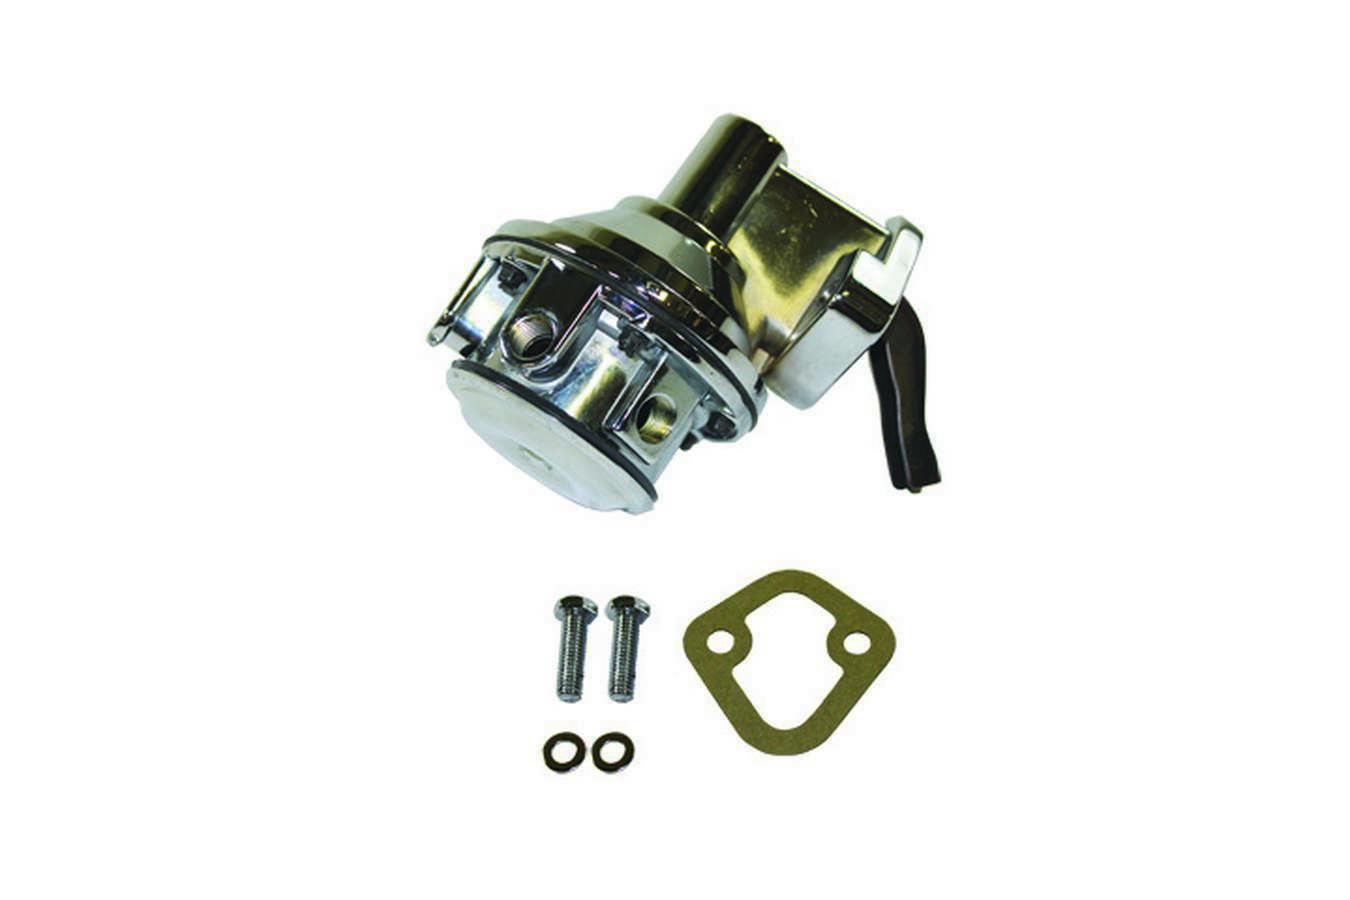 Specialty Chrome 3151 Fuel Pump, Mechanical, 80 gph, 8 psi, 1/4 in NPT Female Inlet, 1/4 in NPT Female Outlet, Aluminum, Chrome, Gas, Big Block Chevy, Each